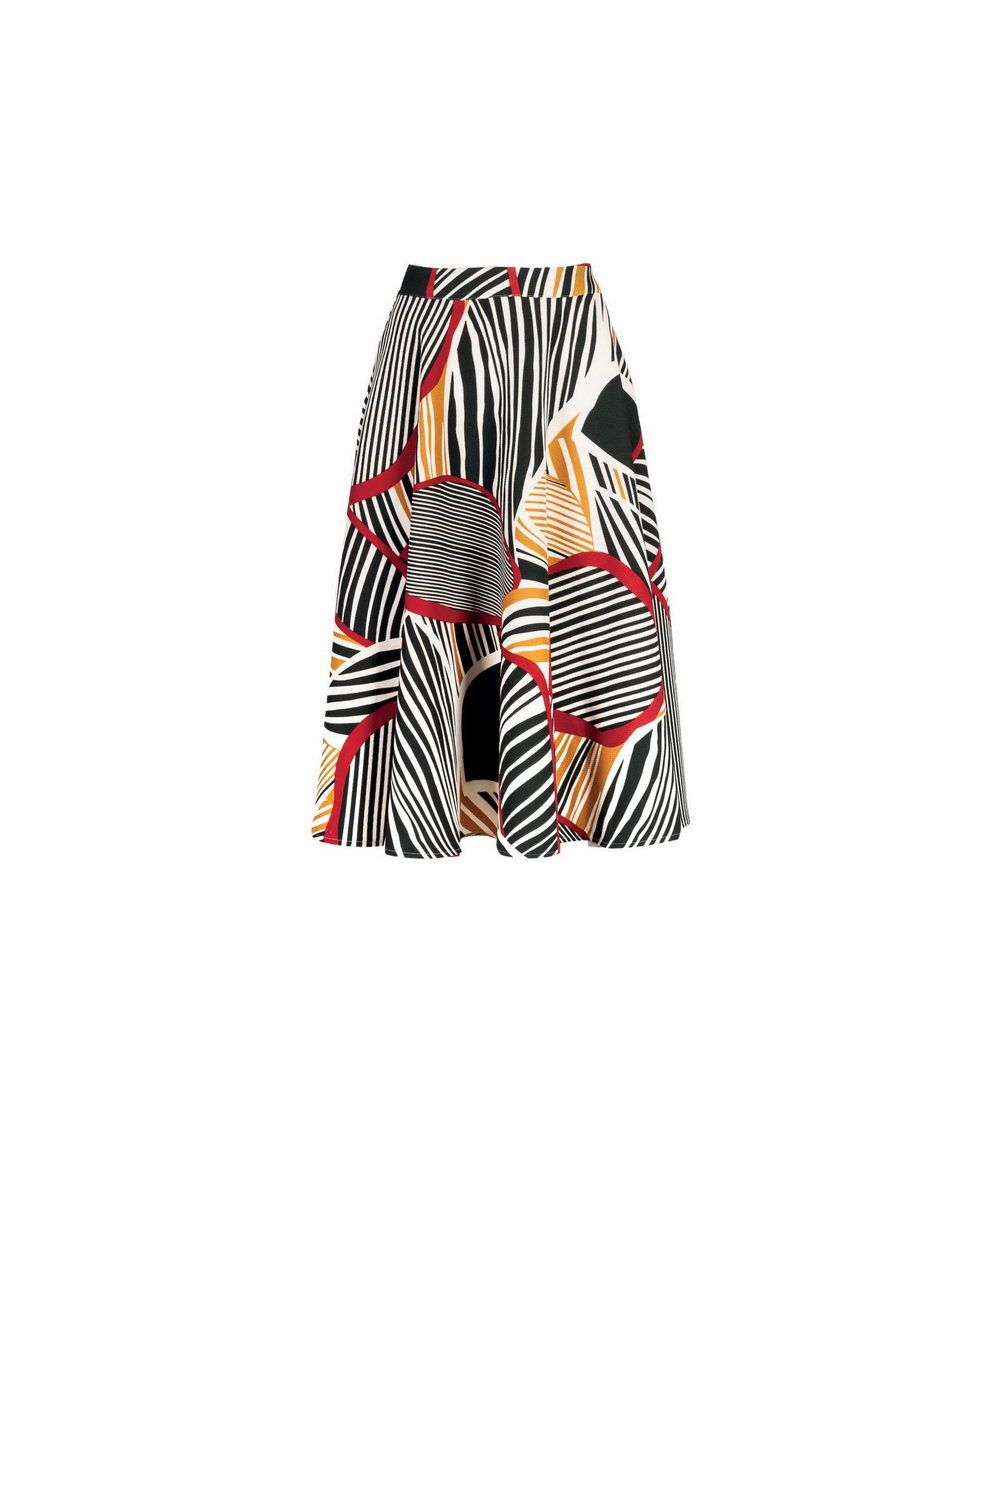 AnonymeDesigners_R139FS069 - skirt - PVP 105,30€_resize